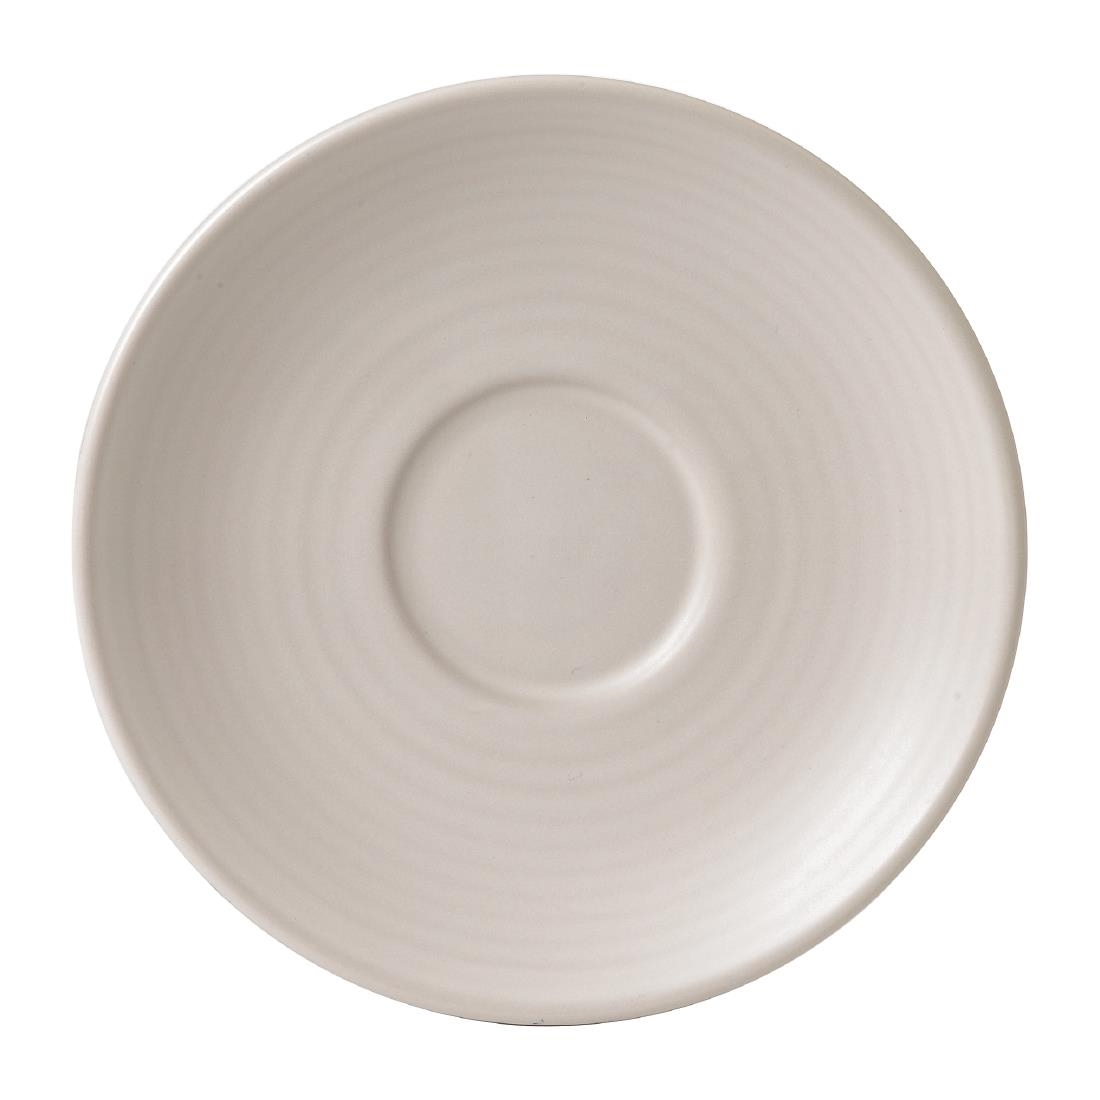 Image of Dudson Evo Pearl Saucer 162mm (Pack of 6) Pack of 6